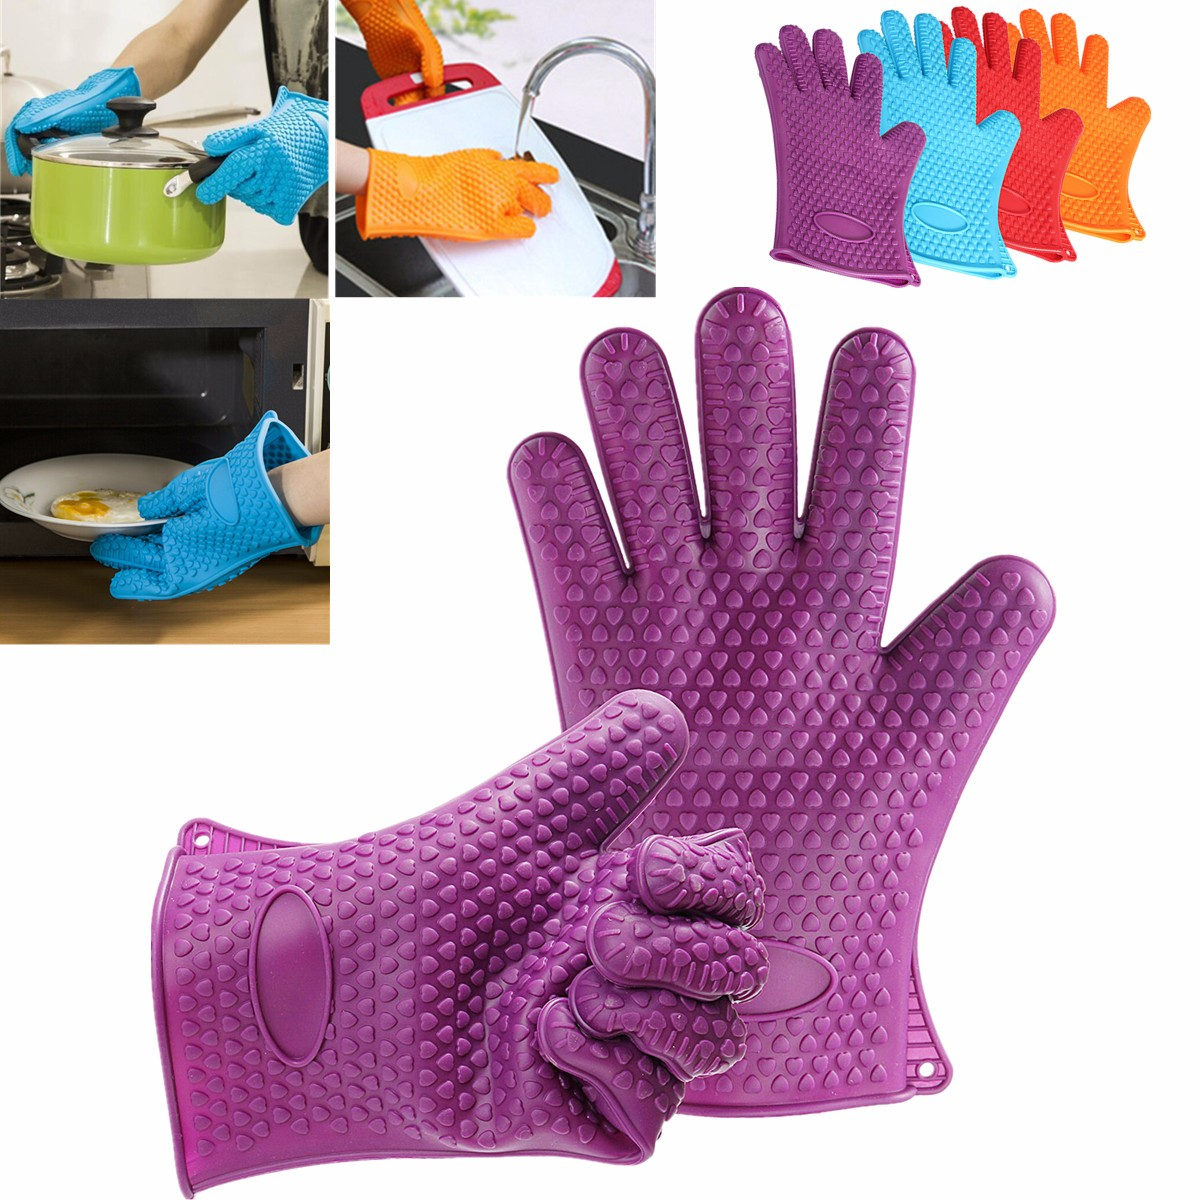 1 Pair Silicone Kitchen Heat Resistant Gloves Oven Grill Pot Holder BBQ Cooking Protective gloves 1pair 932f new design bbq grill red silicone gloves heat resistant bbq gloves microwave oven glovesen 407